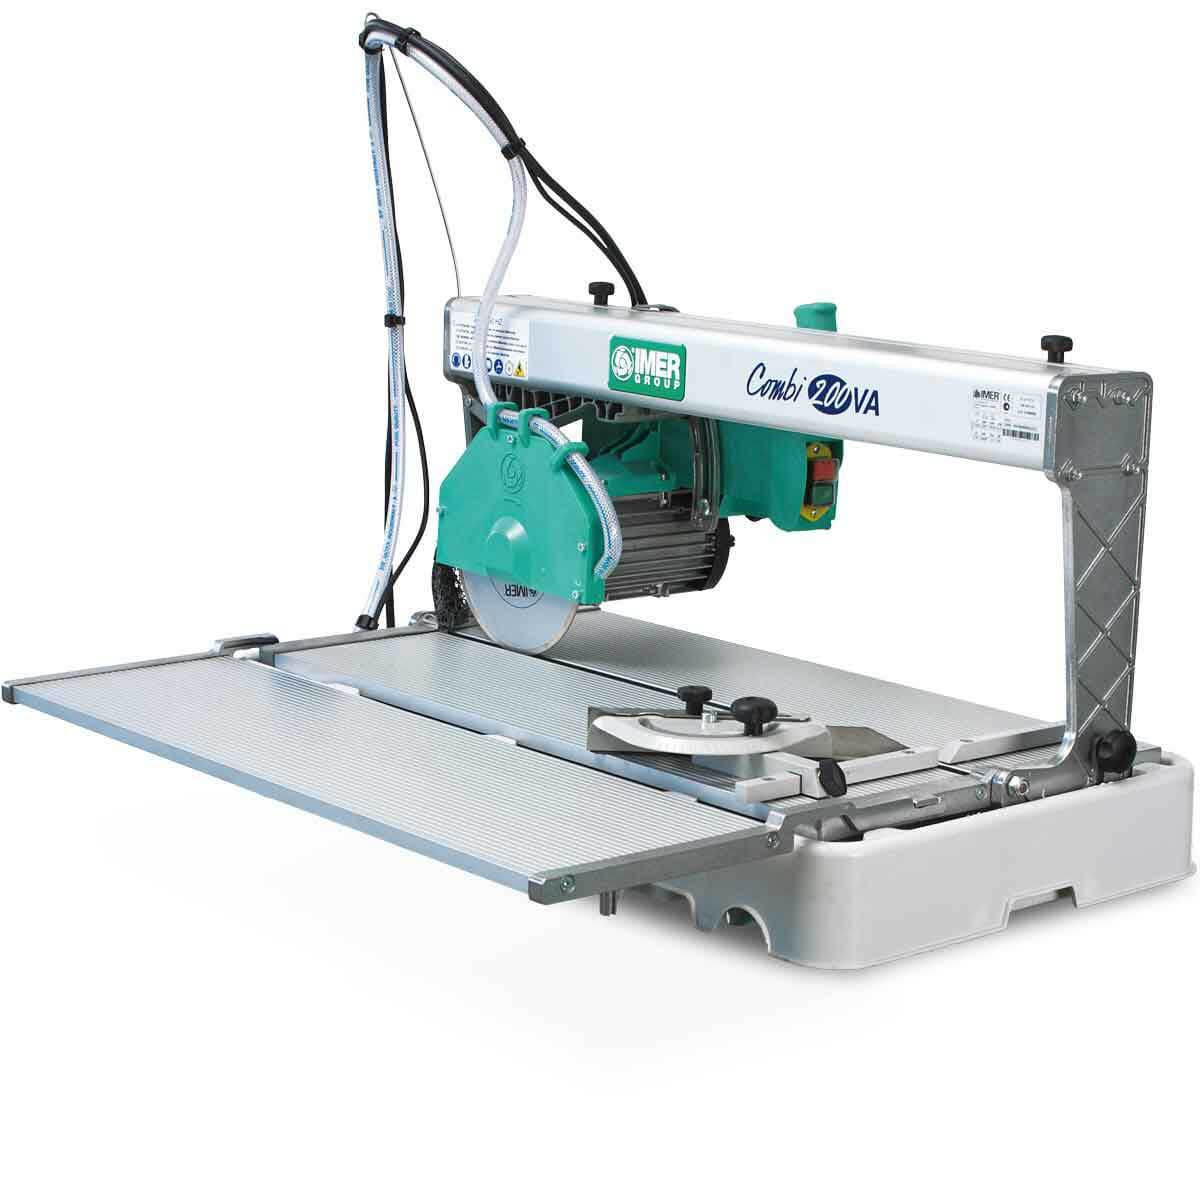 Imer Combi 200VA Wet Saw without stand